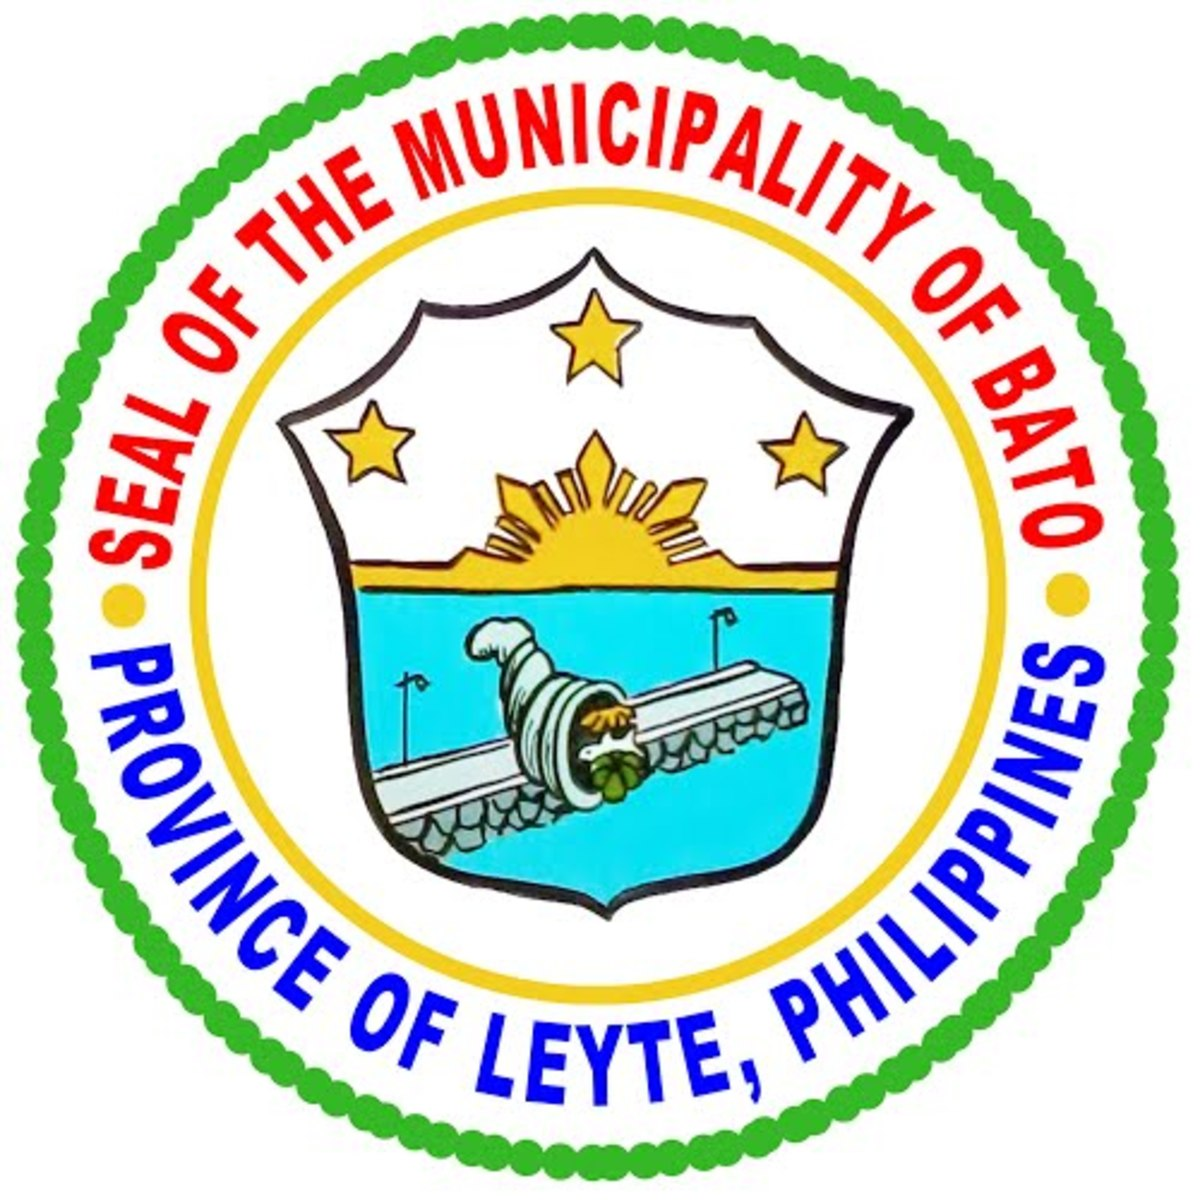 Municipality of Bato, Leyte Official Seal